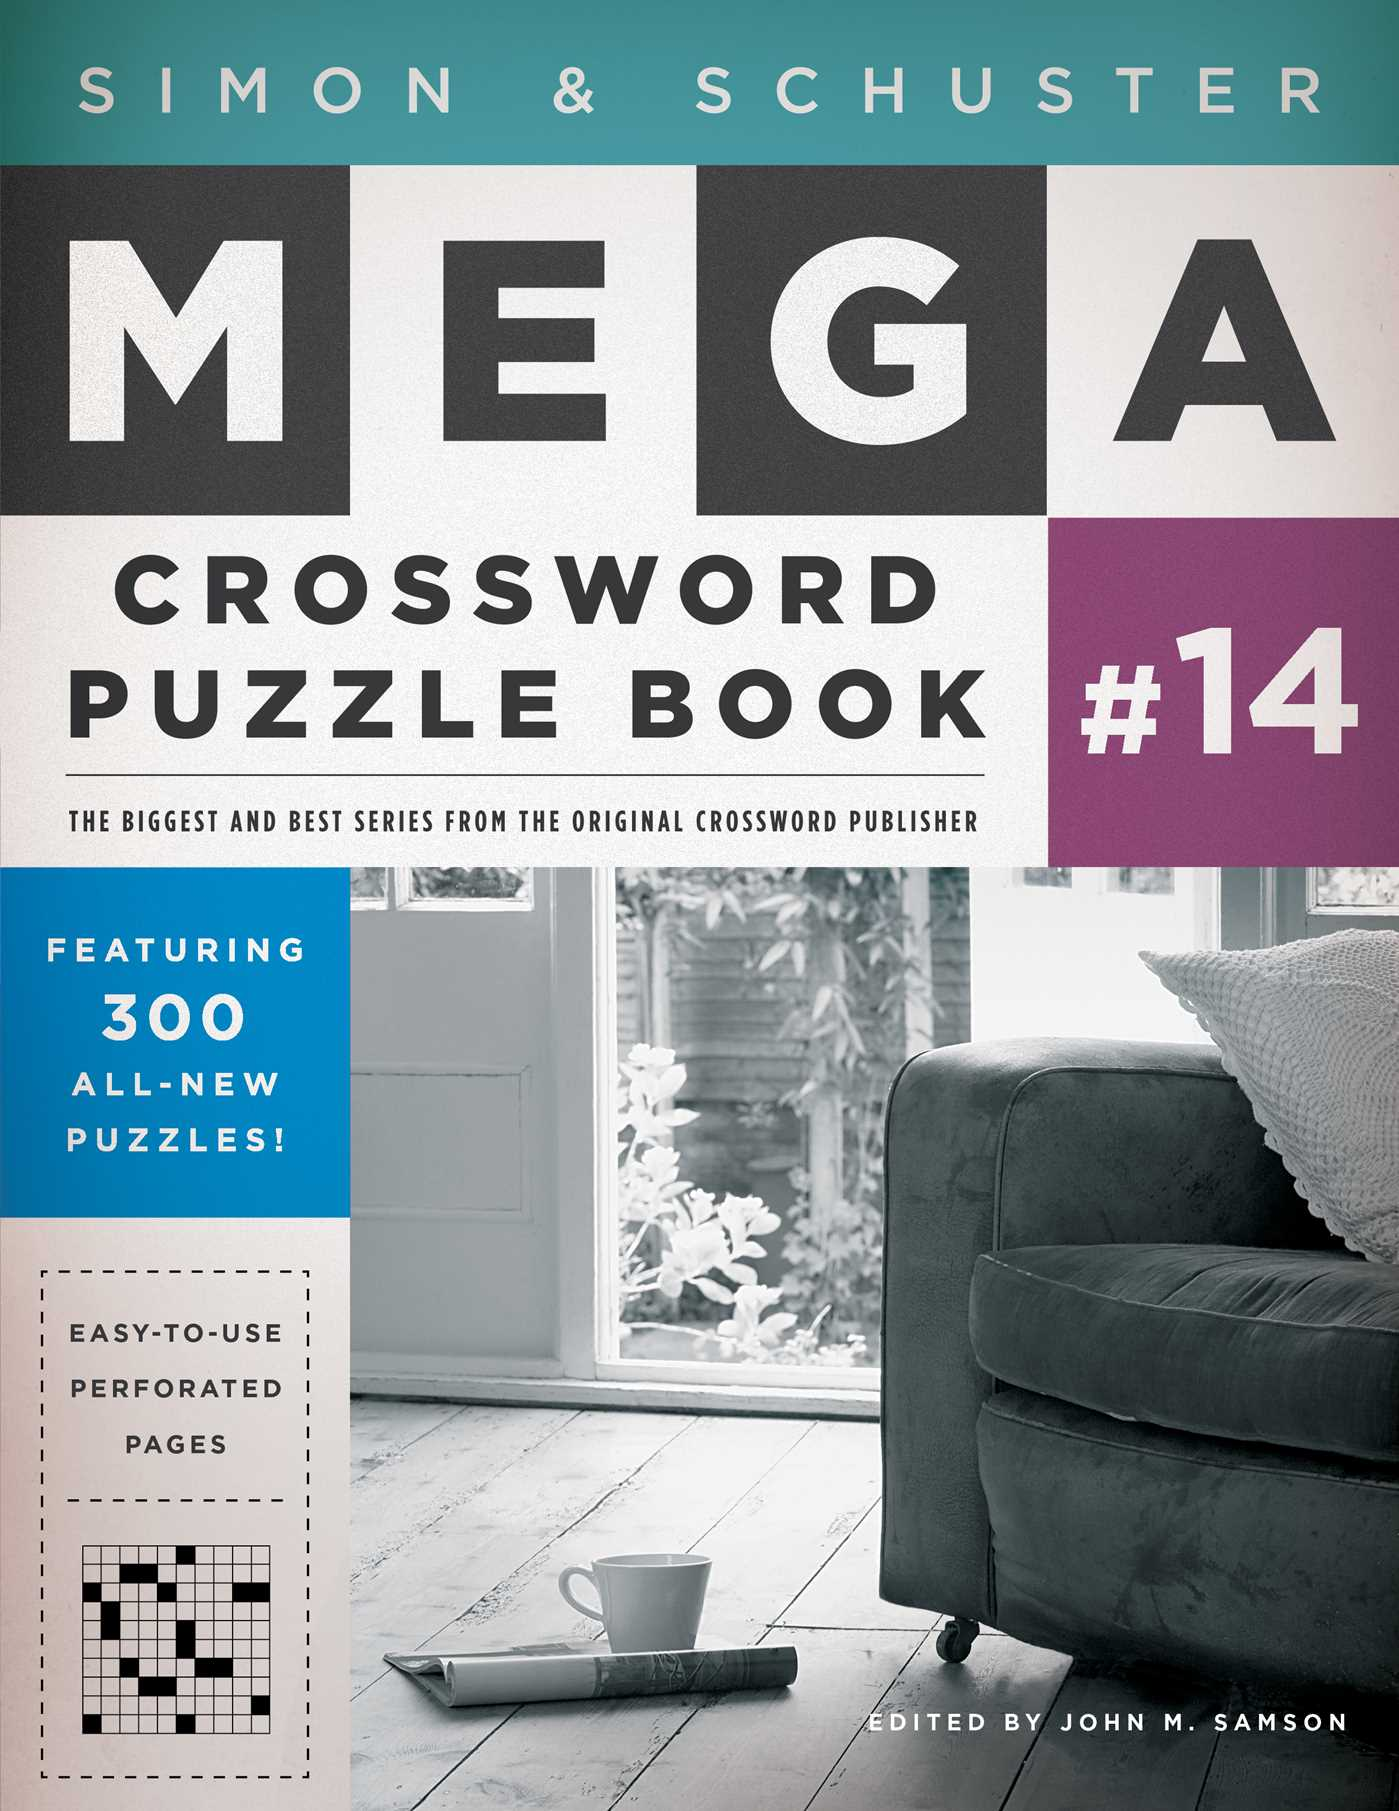 Simon-schuster-mega-crossword-puzzle-book-14-9781476785455_hr